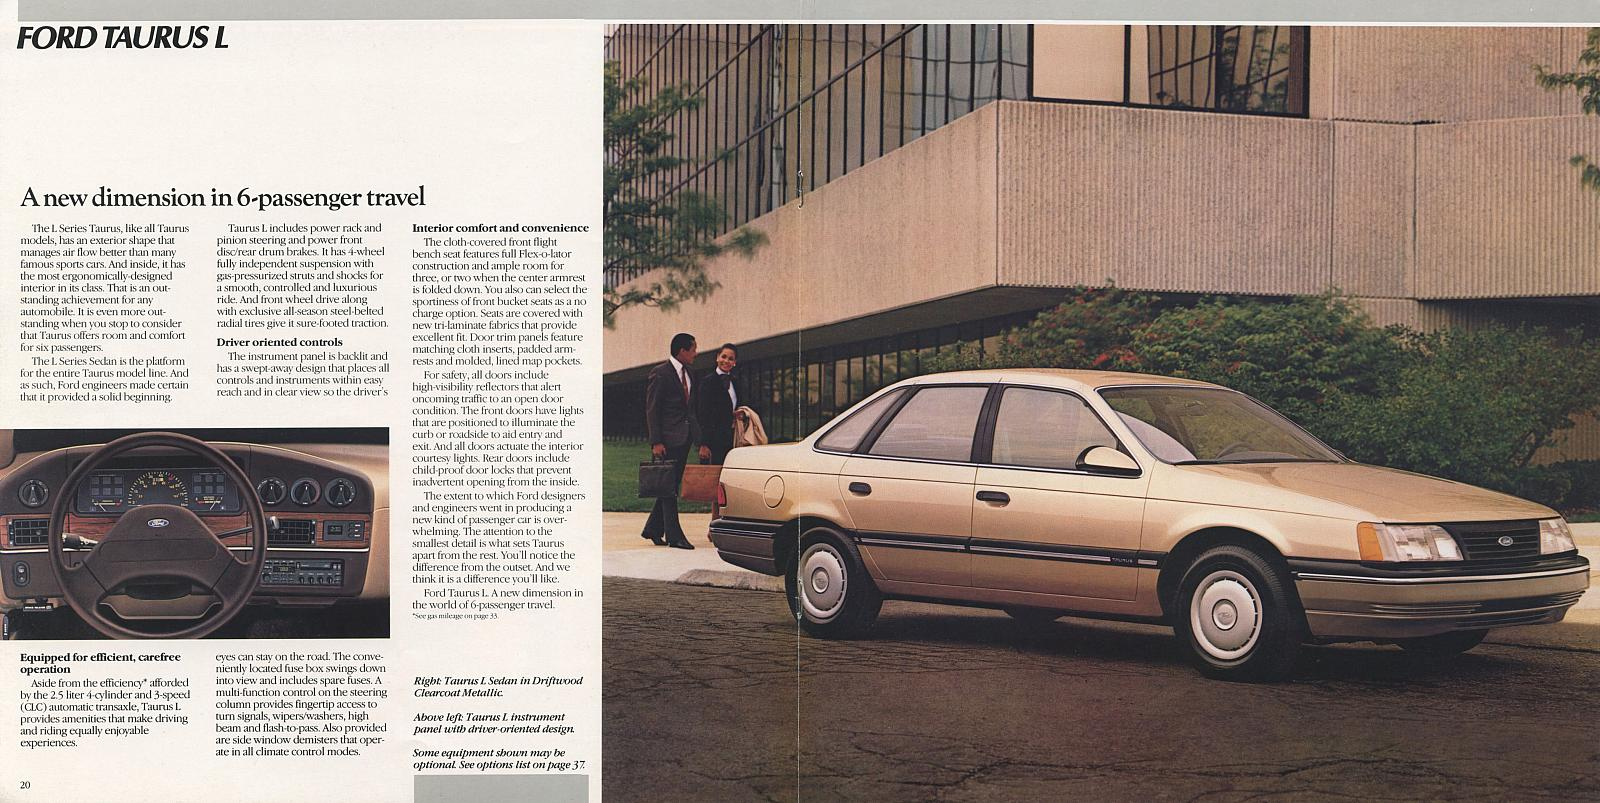 Cc Capsule Ford Taurus Gen1 The Best Seller Has Become Scarce Fuse Box 95 First And Second Generation Grille Was Not Listed As Standard On All Year Models Early 1986 L Were Shown With A More Traditional